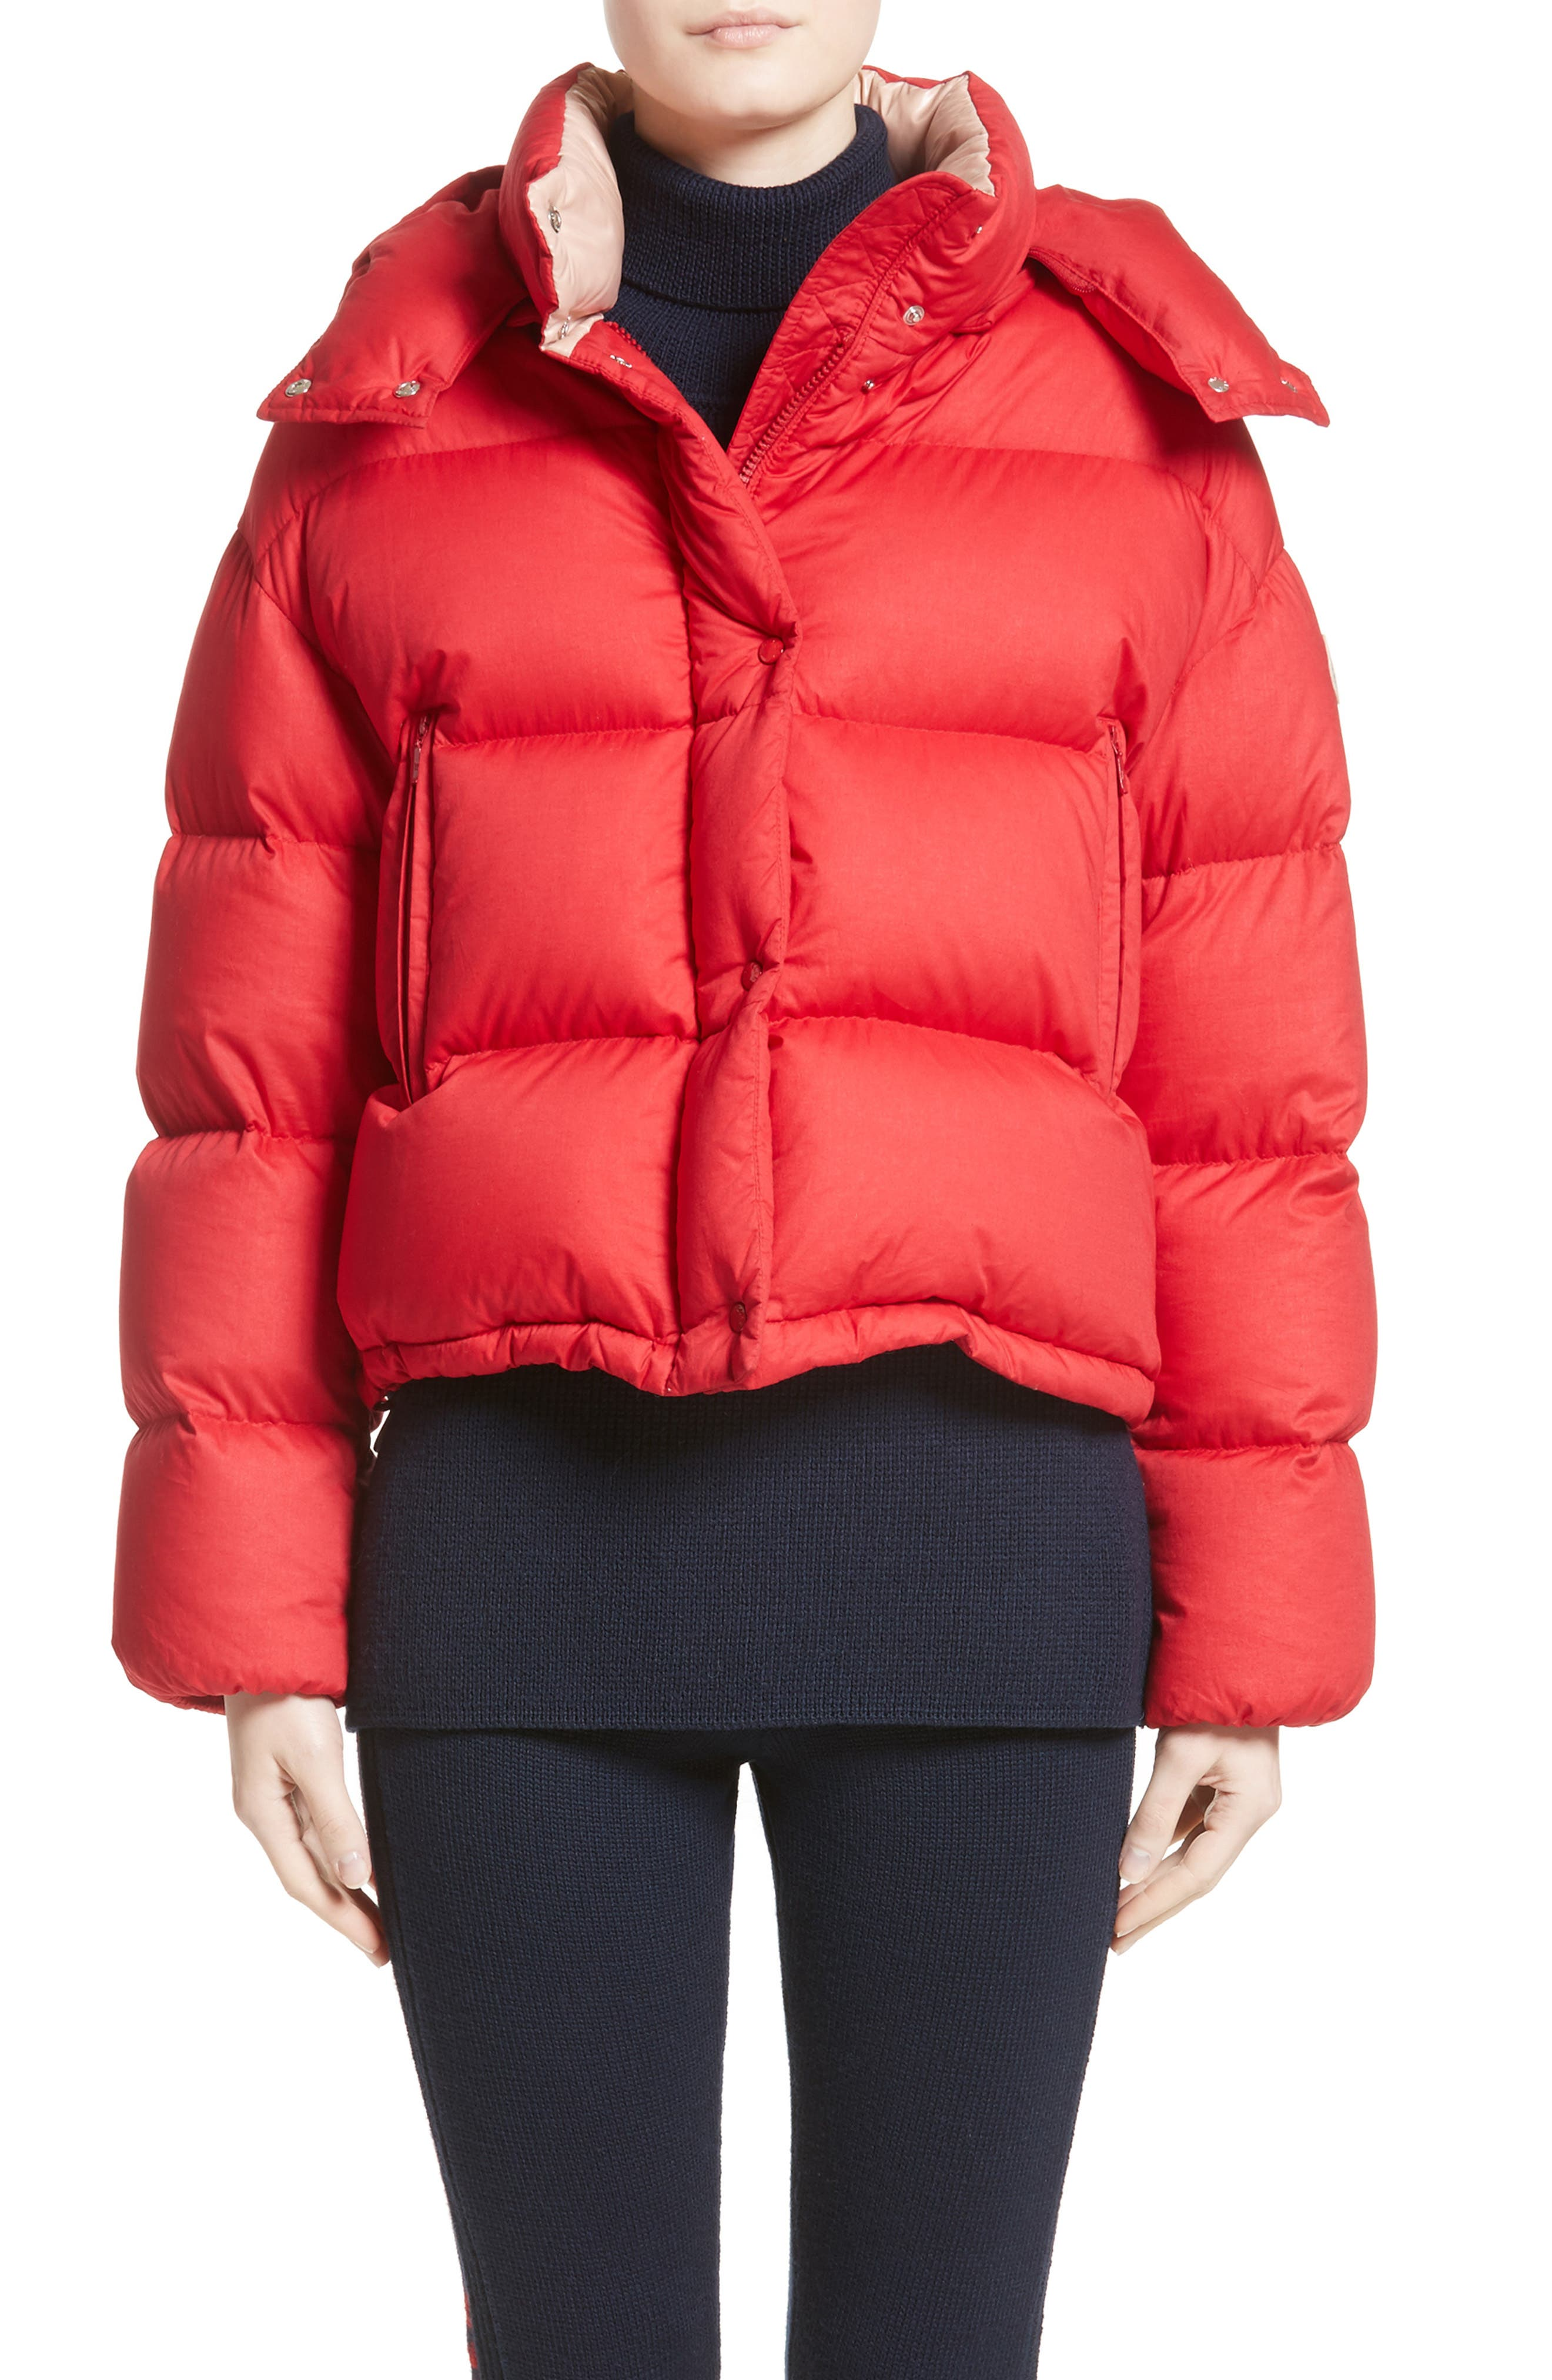 moncler red puffer jacket